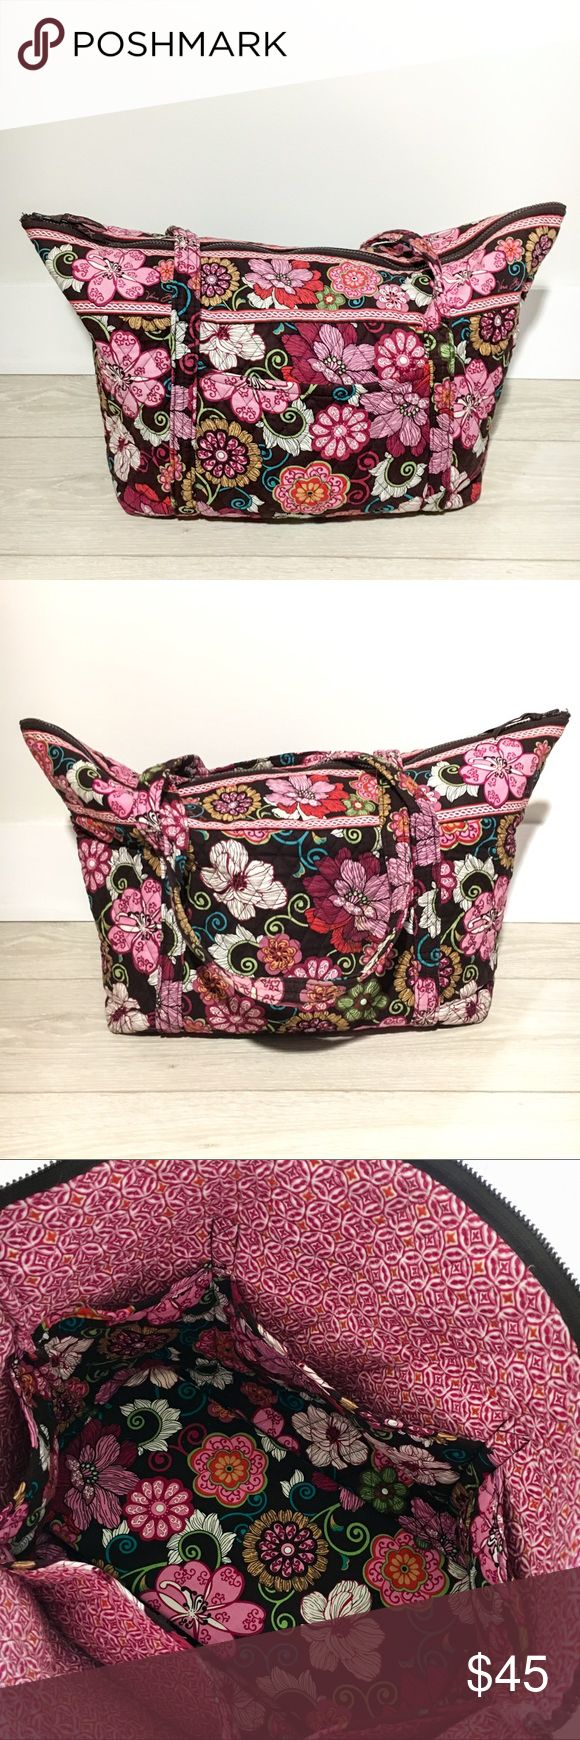 """Vera Bradley Travel Bag Mod Floral Pink Vera Bradley Travel Bag in Mod Floral Pink 6 roomy slip pockets inside bag and zip-top closure.  1 large slip pocket on outside of bag.  In great condition!   Dimensions: 13.5"""" H; 16"""" W; 7.5"""" D with 13"""" strap drop Vera Bradley Bags Travel Bags"""